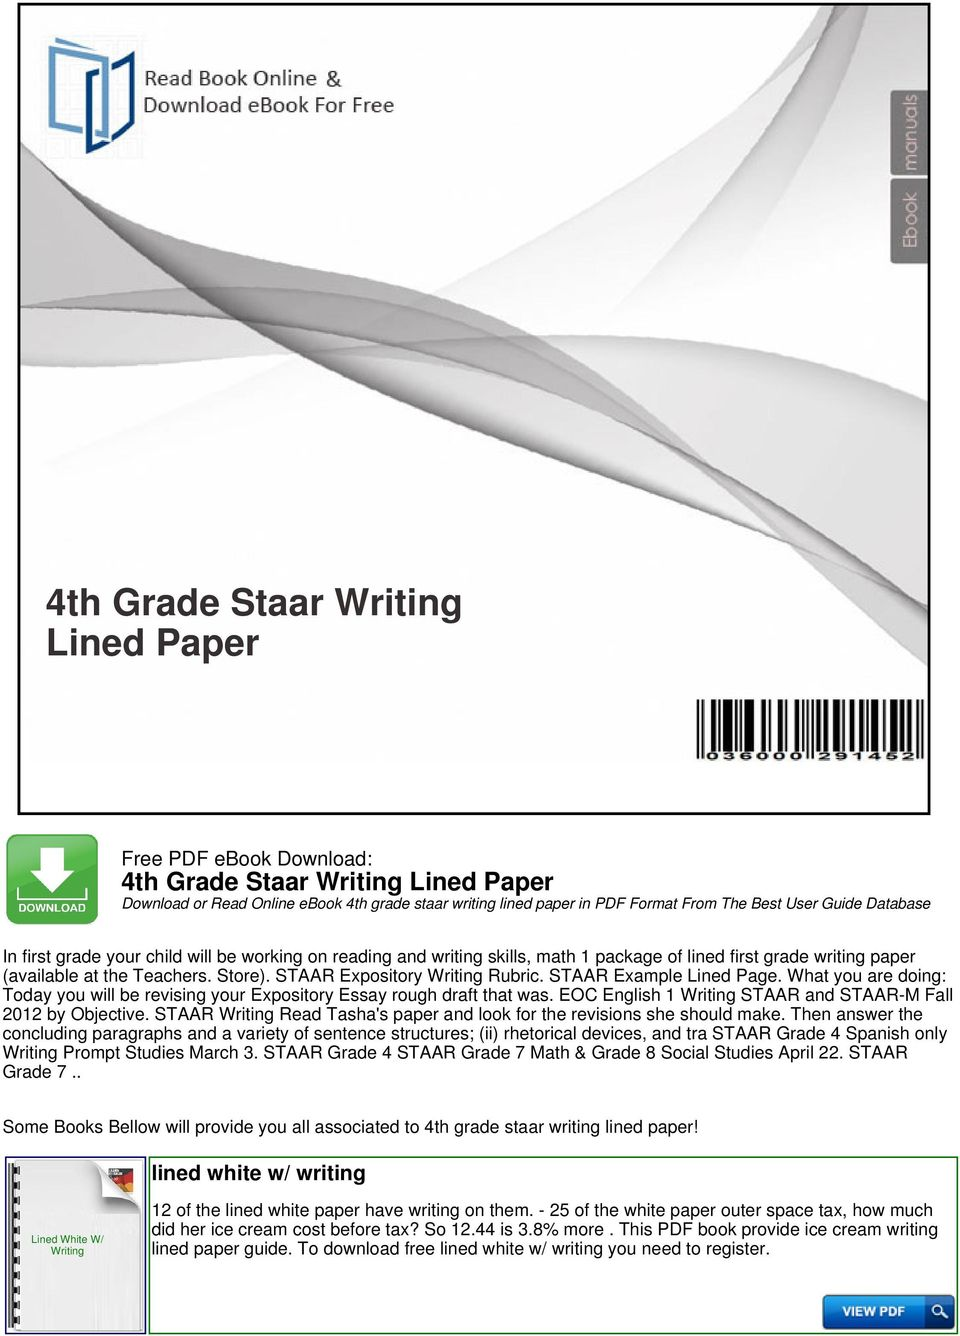 4th grade staar writing lined paper pdf what you are doing today you will be revising your